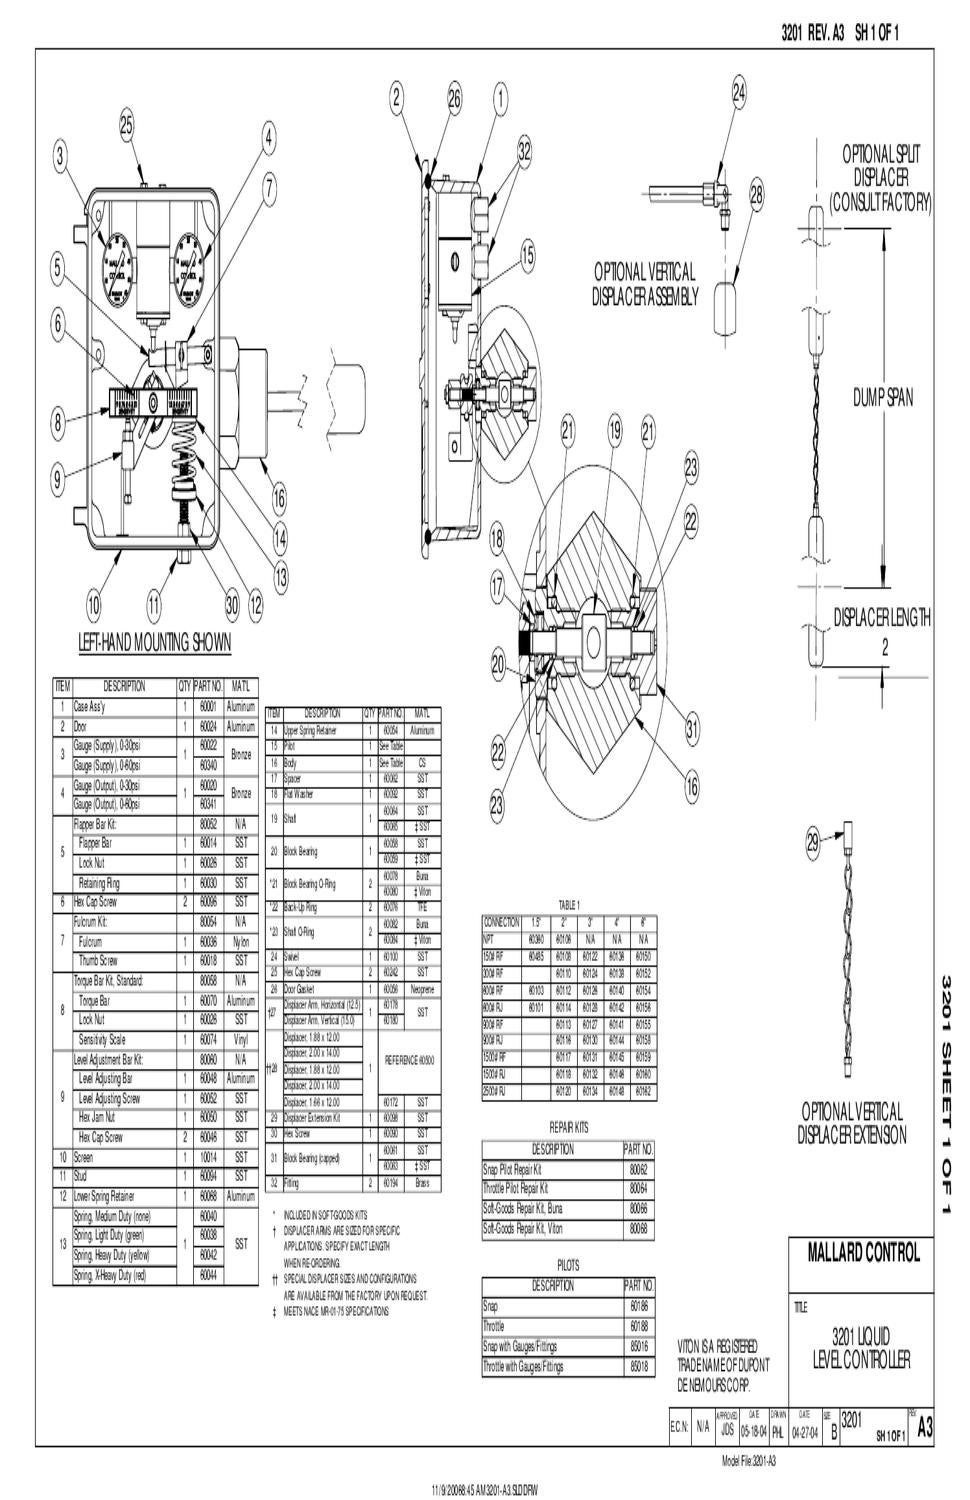 3201 LLC Schematic by RMC Process Controls & Filtration